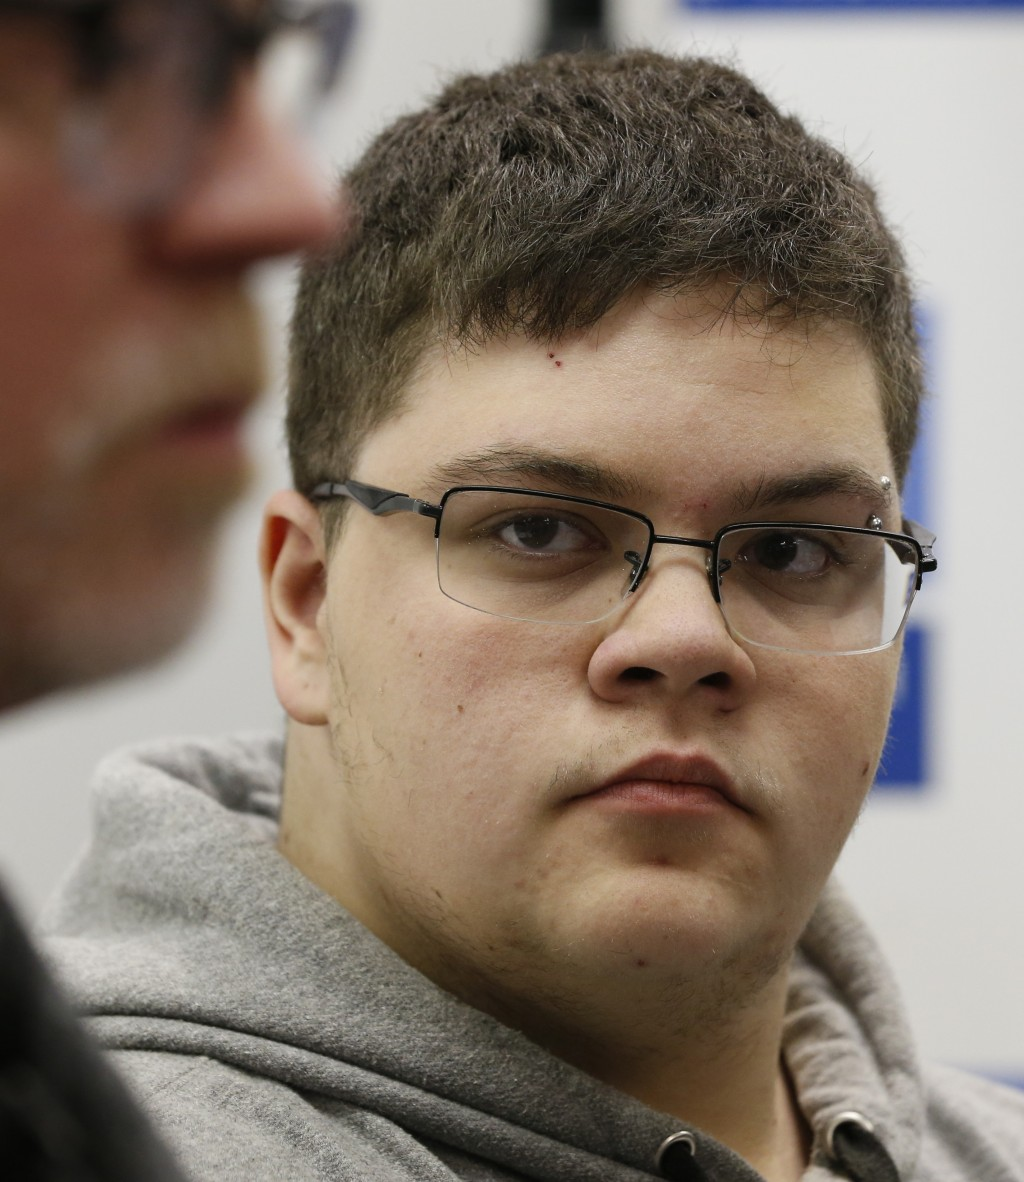 FILE - In this March 6, 2017, file photo, Gloucester County High School senior Gavin Grimm, a transgender student, listens to a speaker during a news